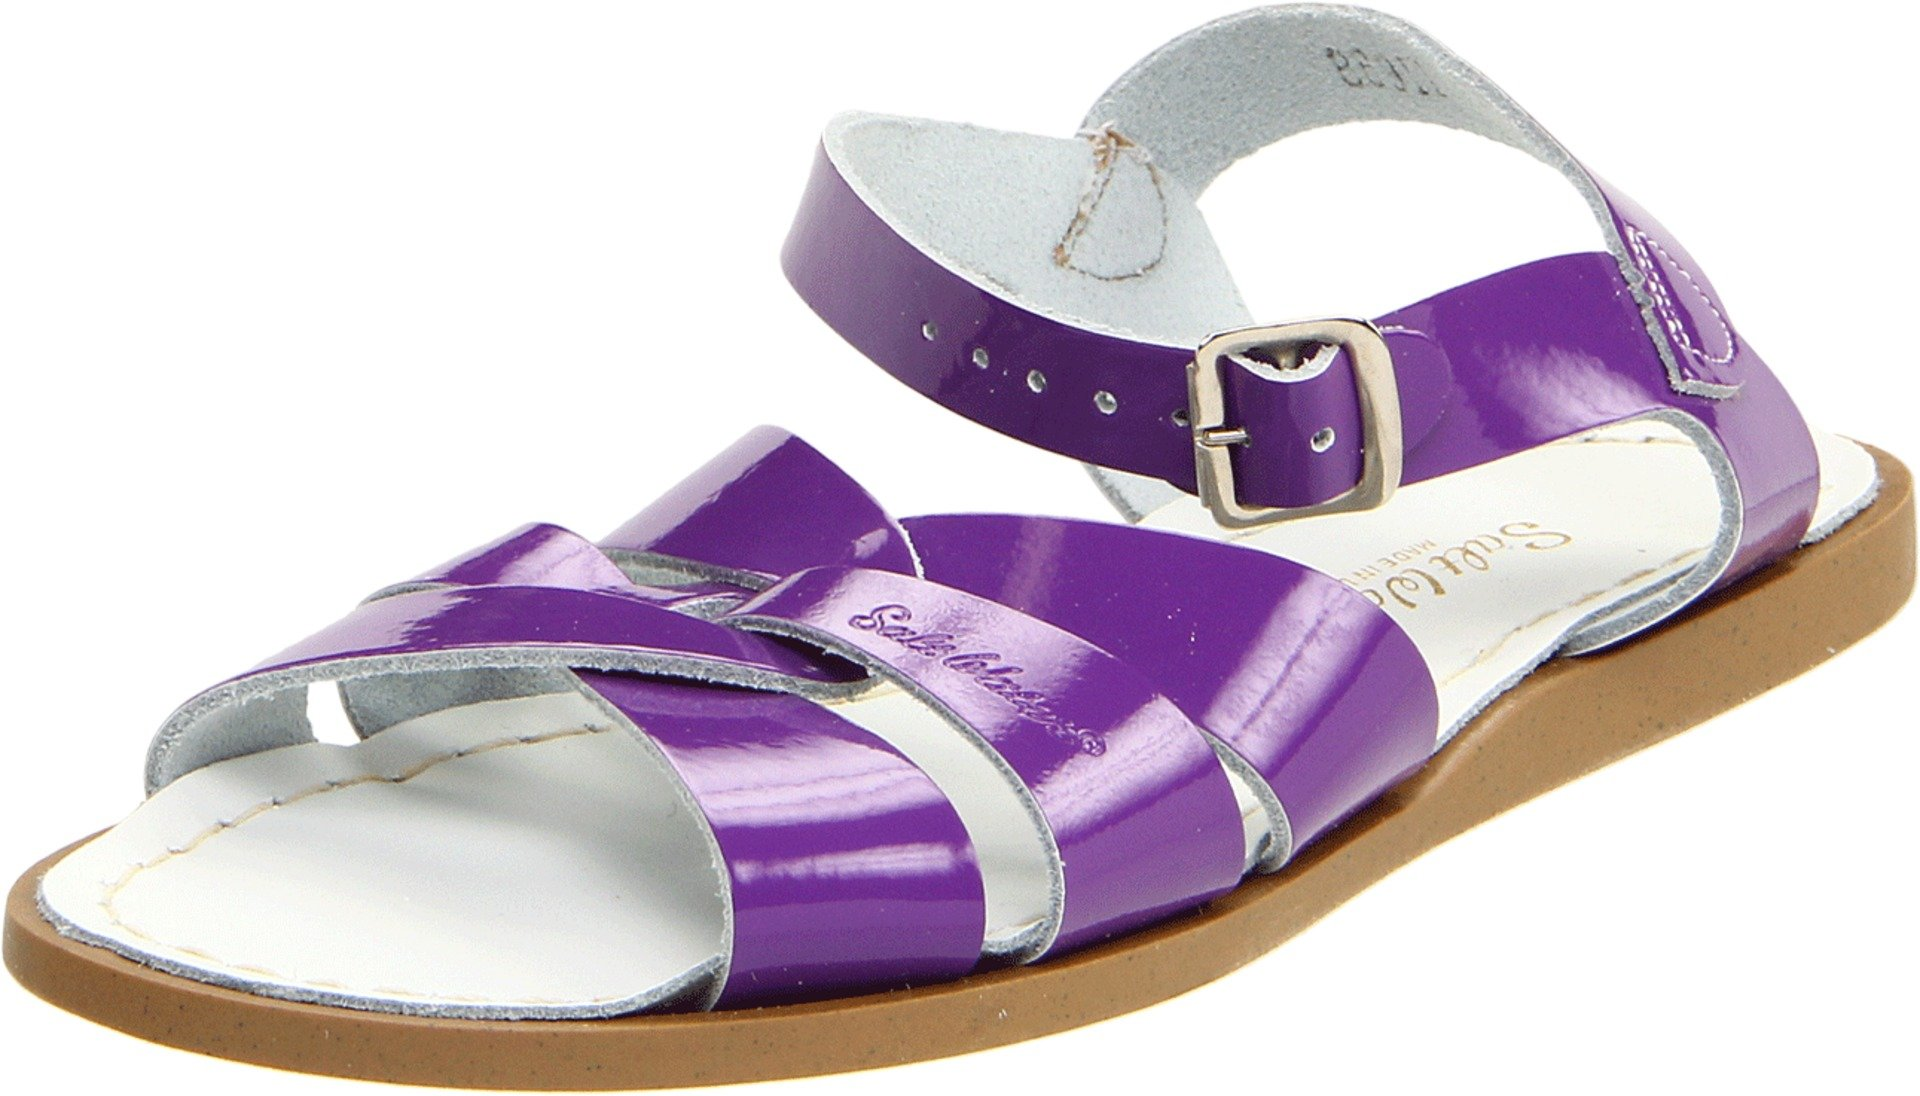 Salt Water Sandals 889-SHINYPURPLE by Hoy Shoe The Original Shiny Purple Sandal